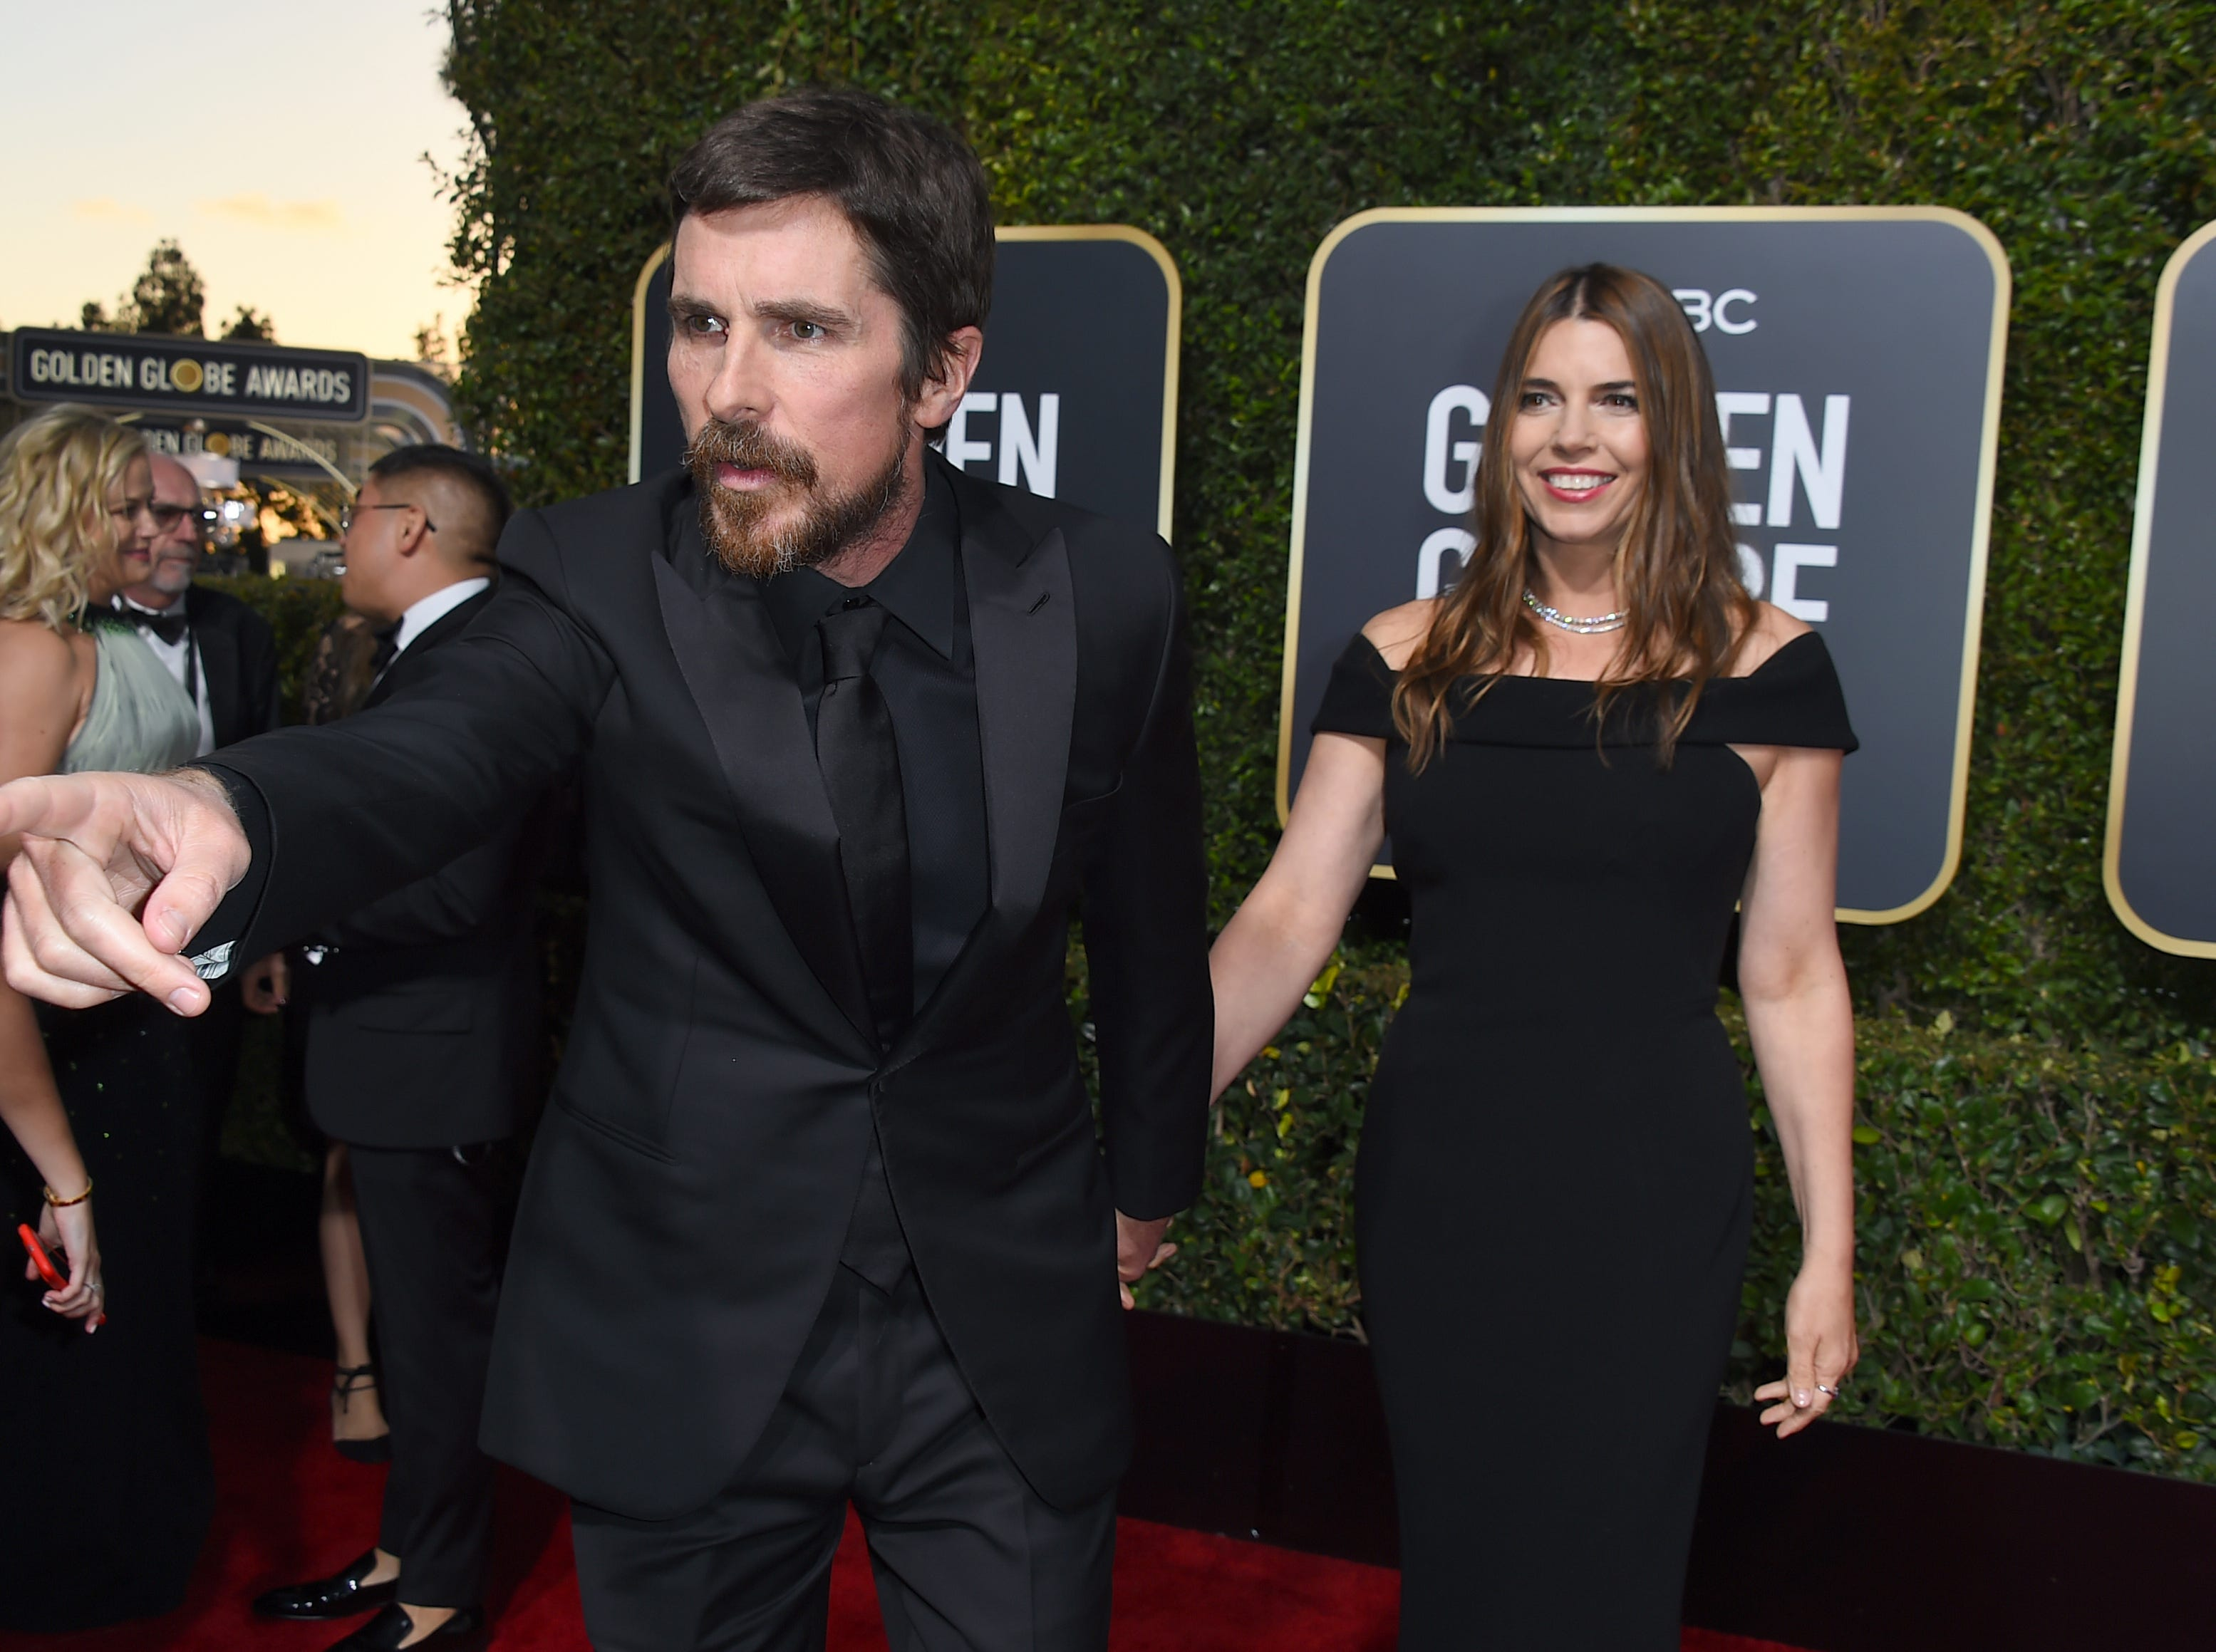 Christian Bale, left, gestures as he and Sibi Blazic arrive at the 76th annual Golden Globe Awards at the Beverly Hilton Hotel.